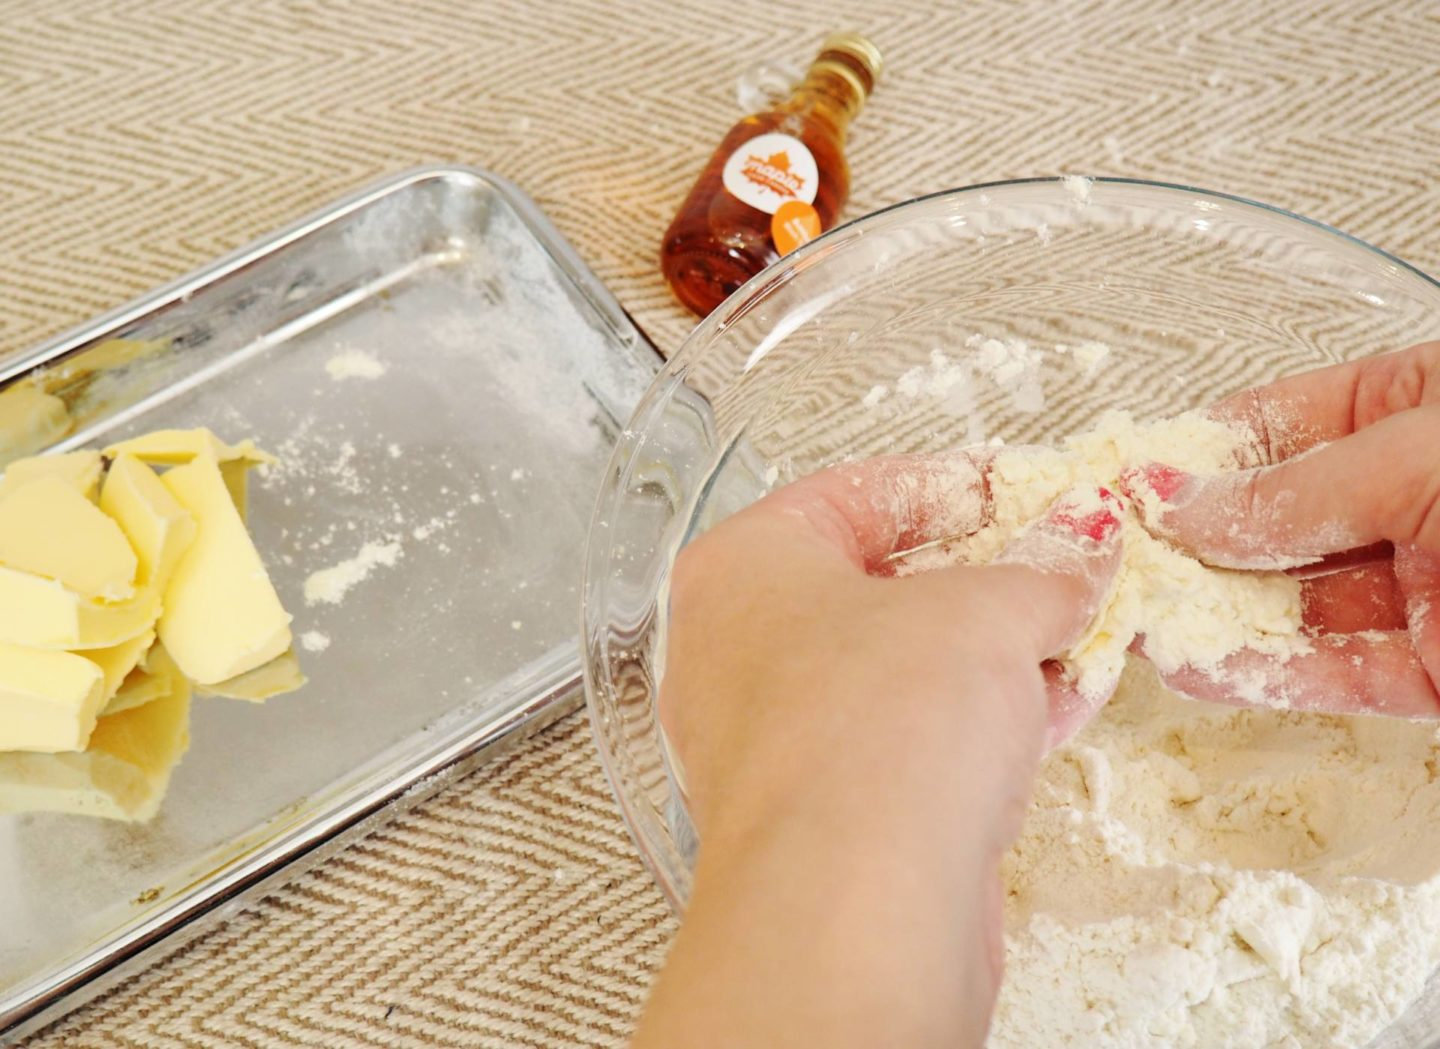 Maple Syrup From Canada Bottle - Mixing Dough with fingers